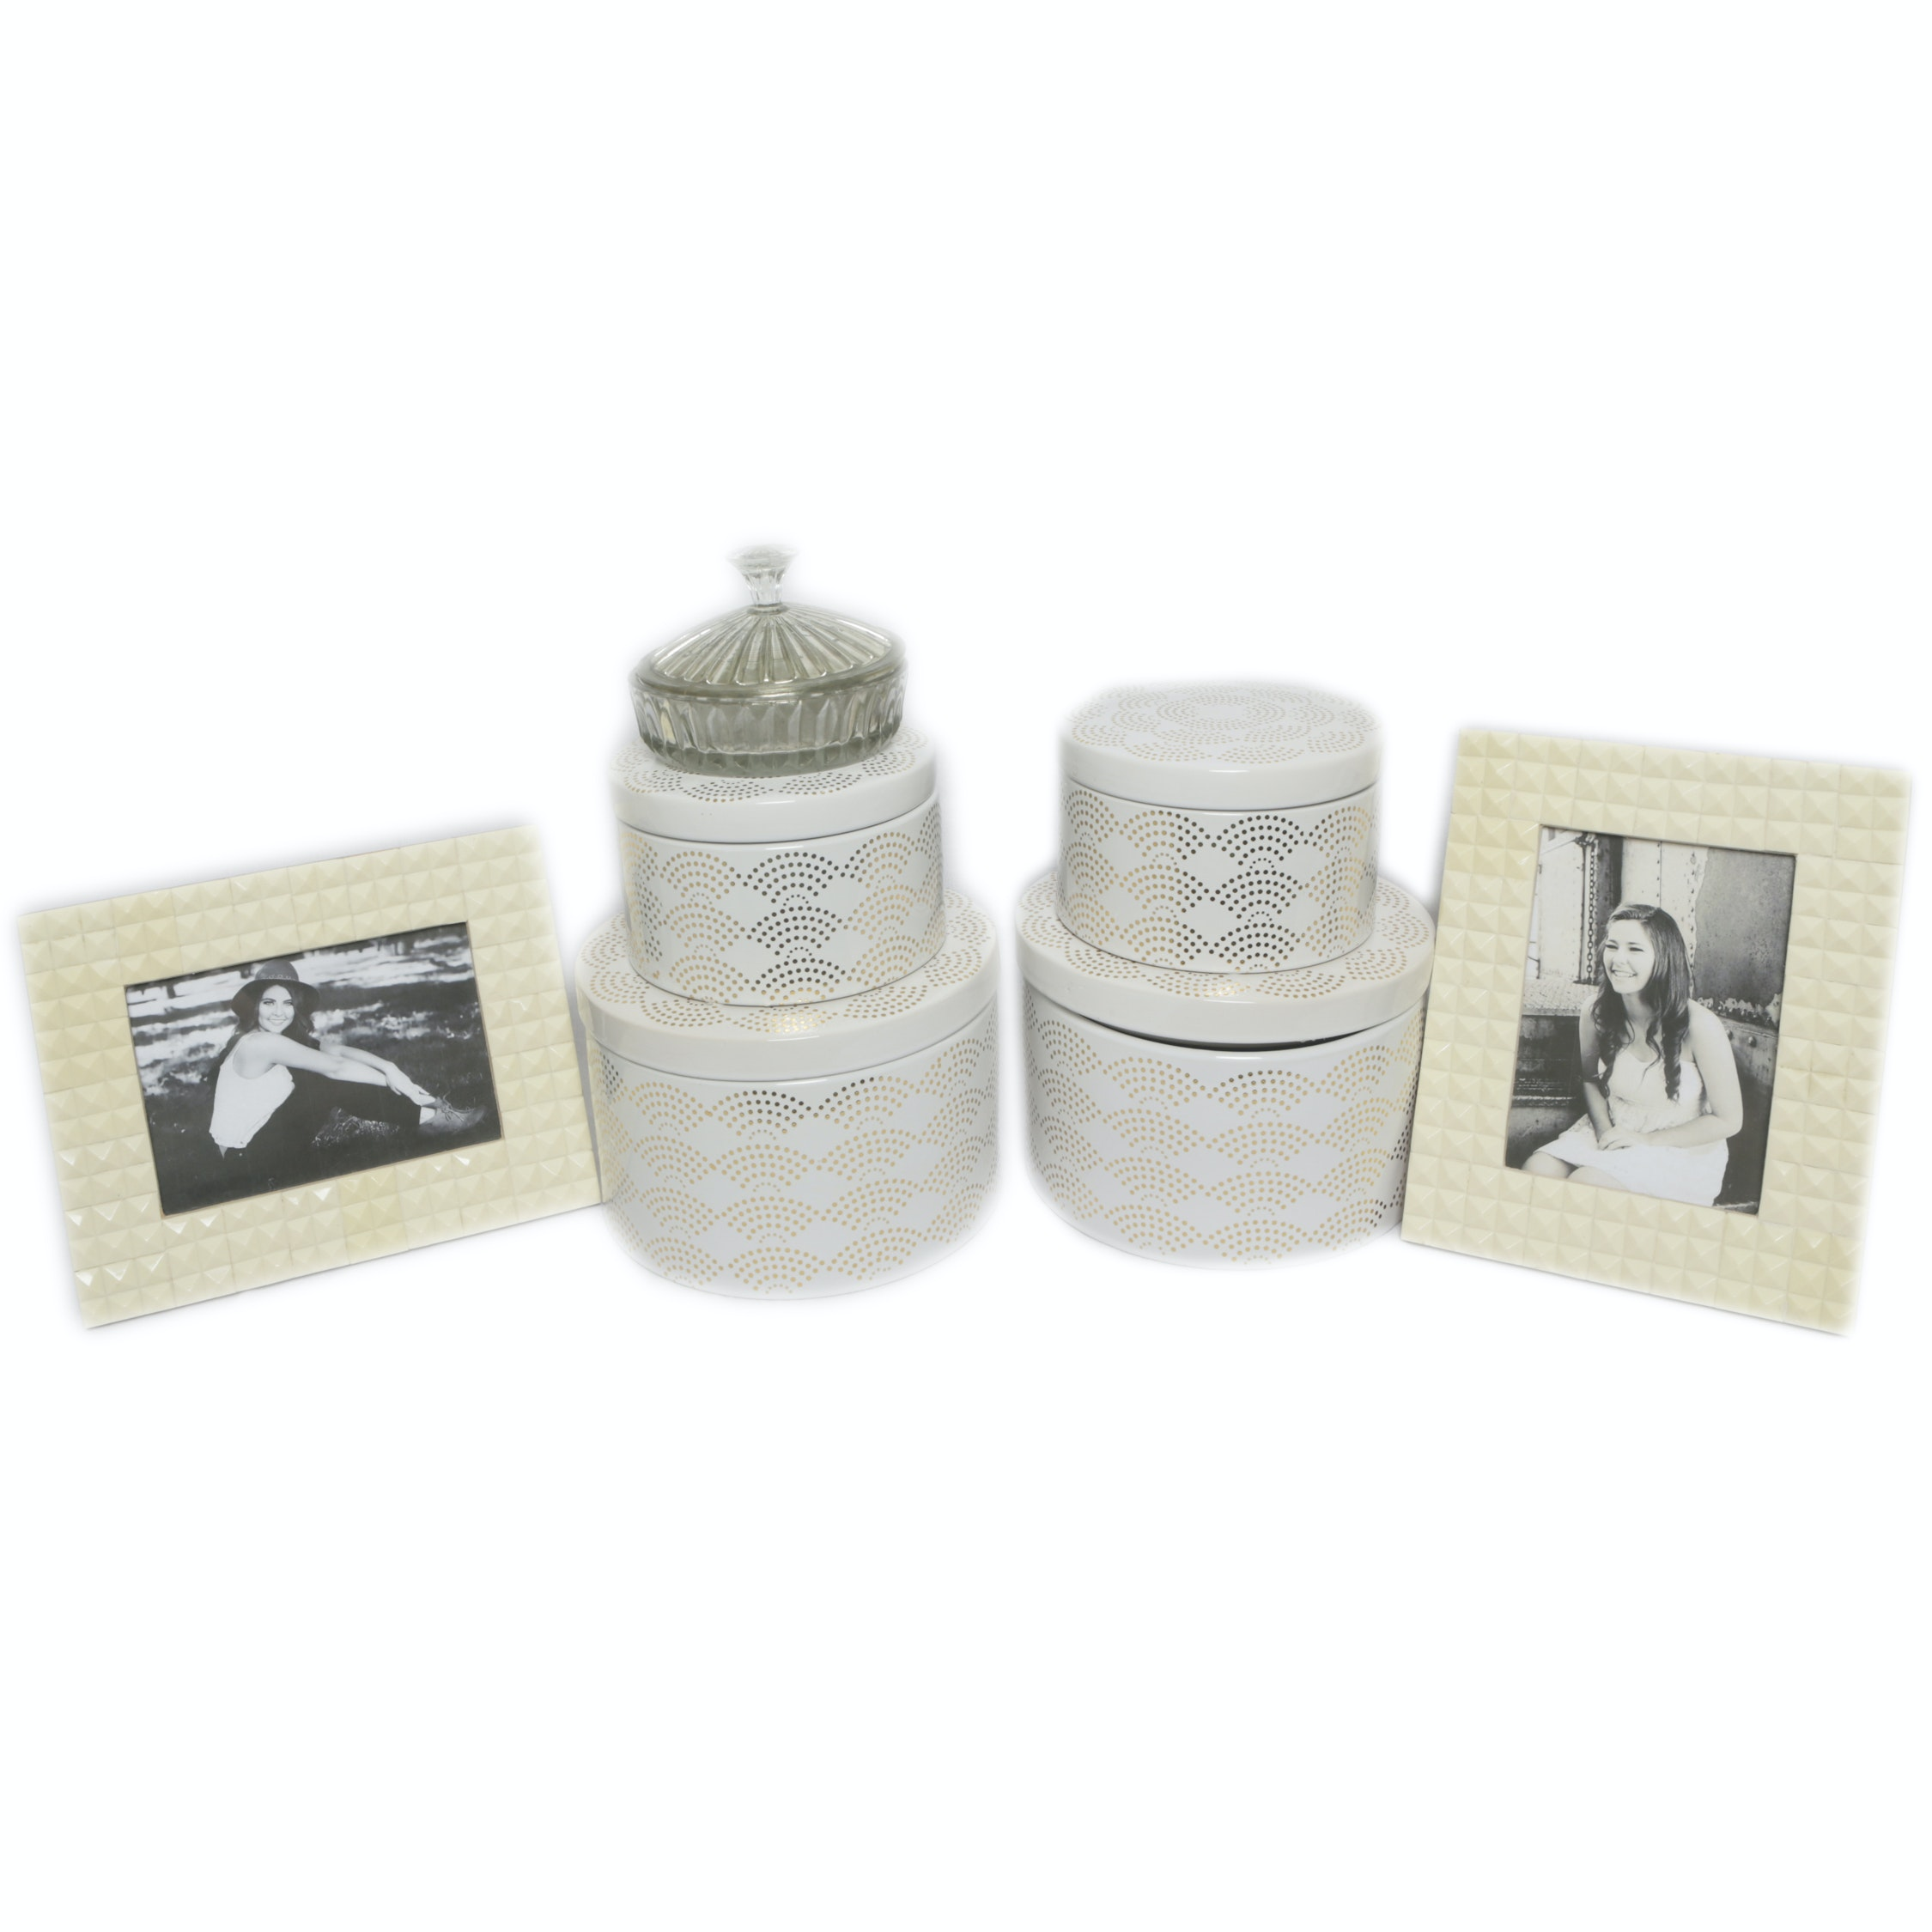 Metal Storage Boxes with Textured Picture Frames and Glass Trinket Box